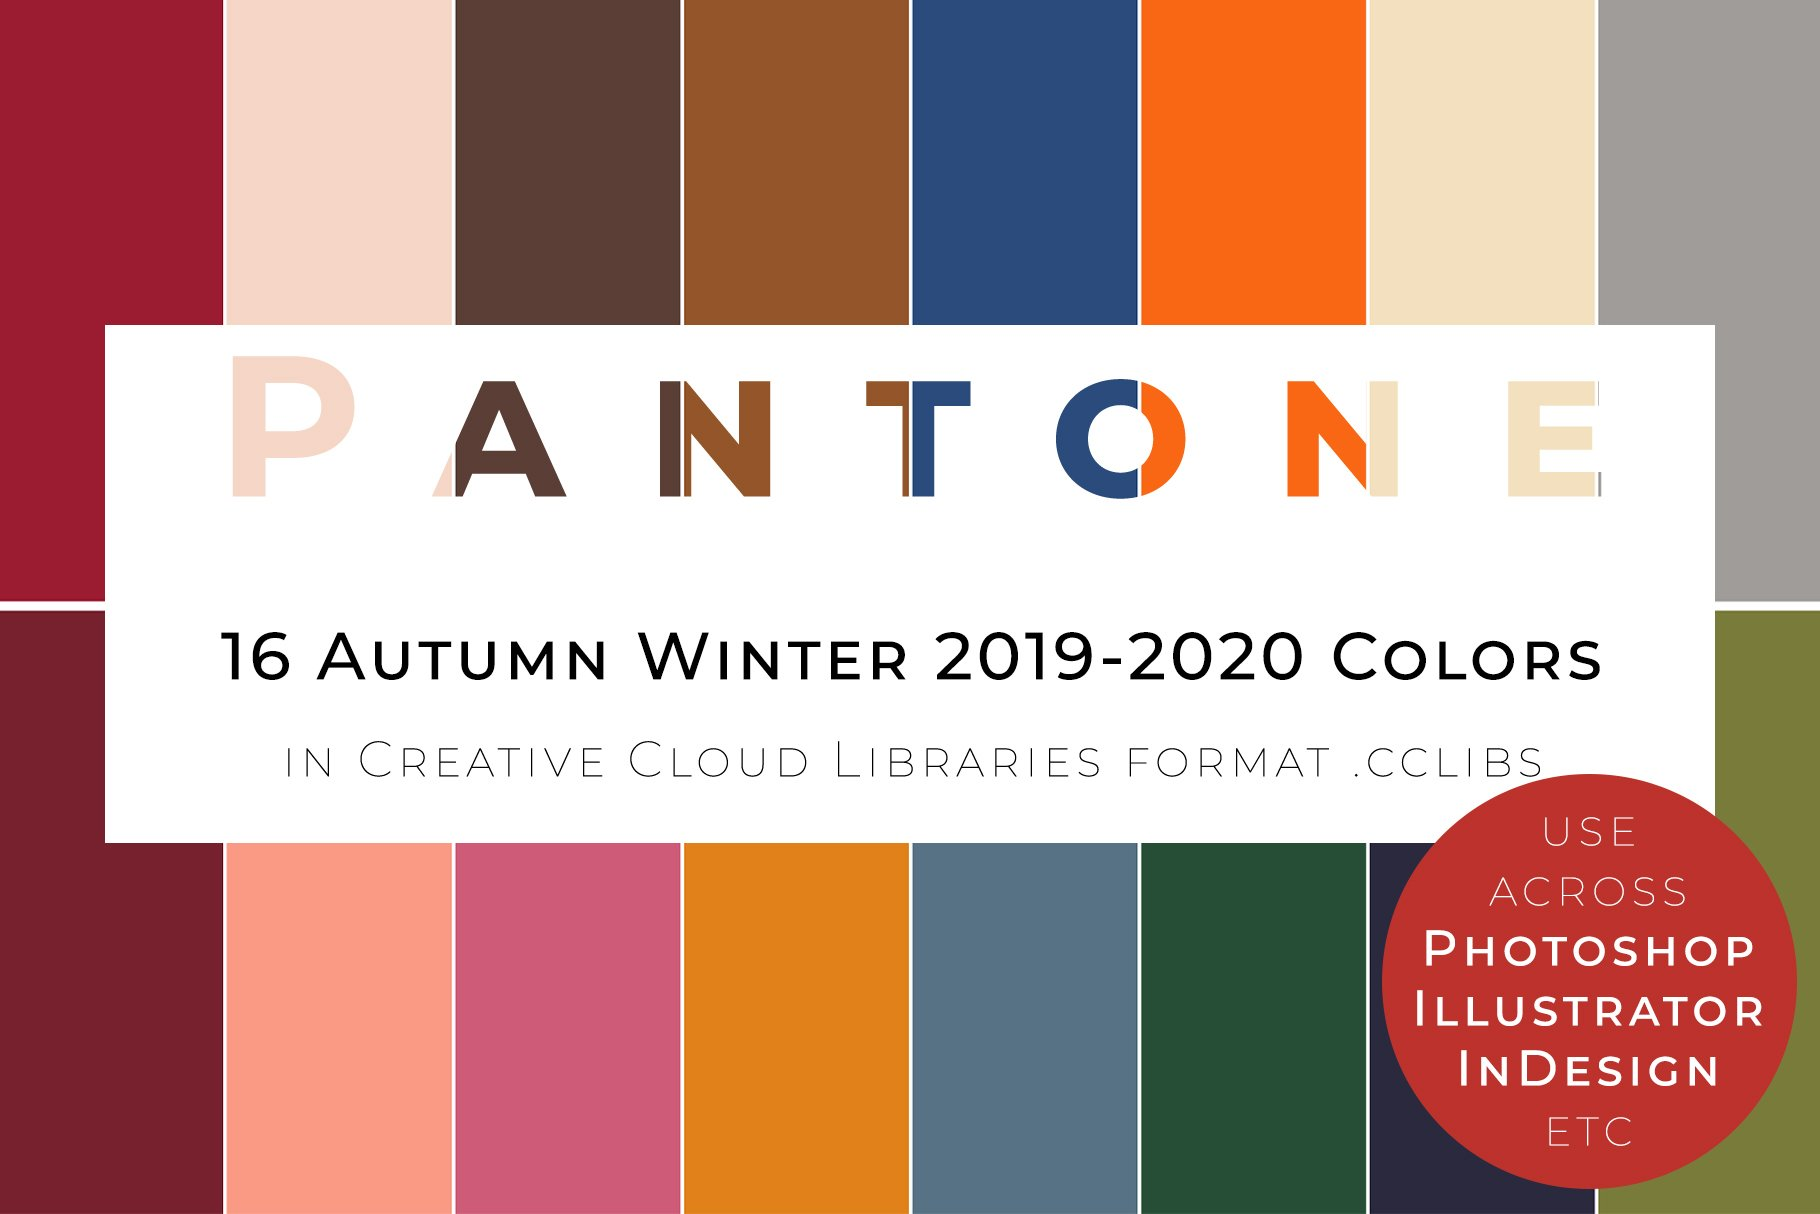 16 pantone aw 2019 20 palette illustrator add ons creative market